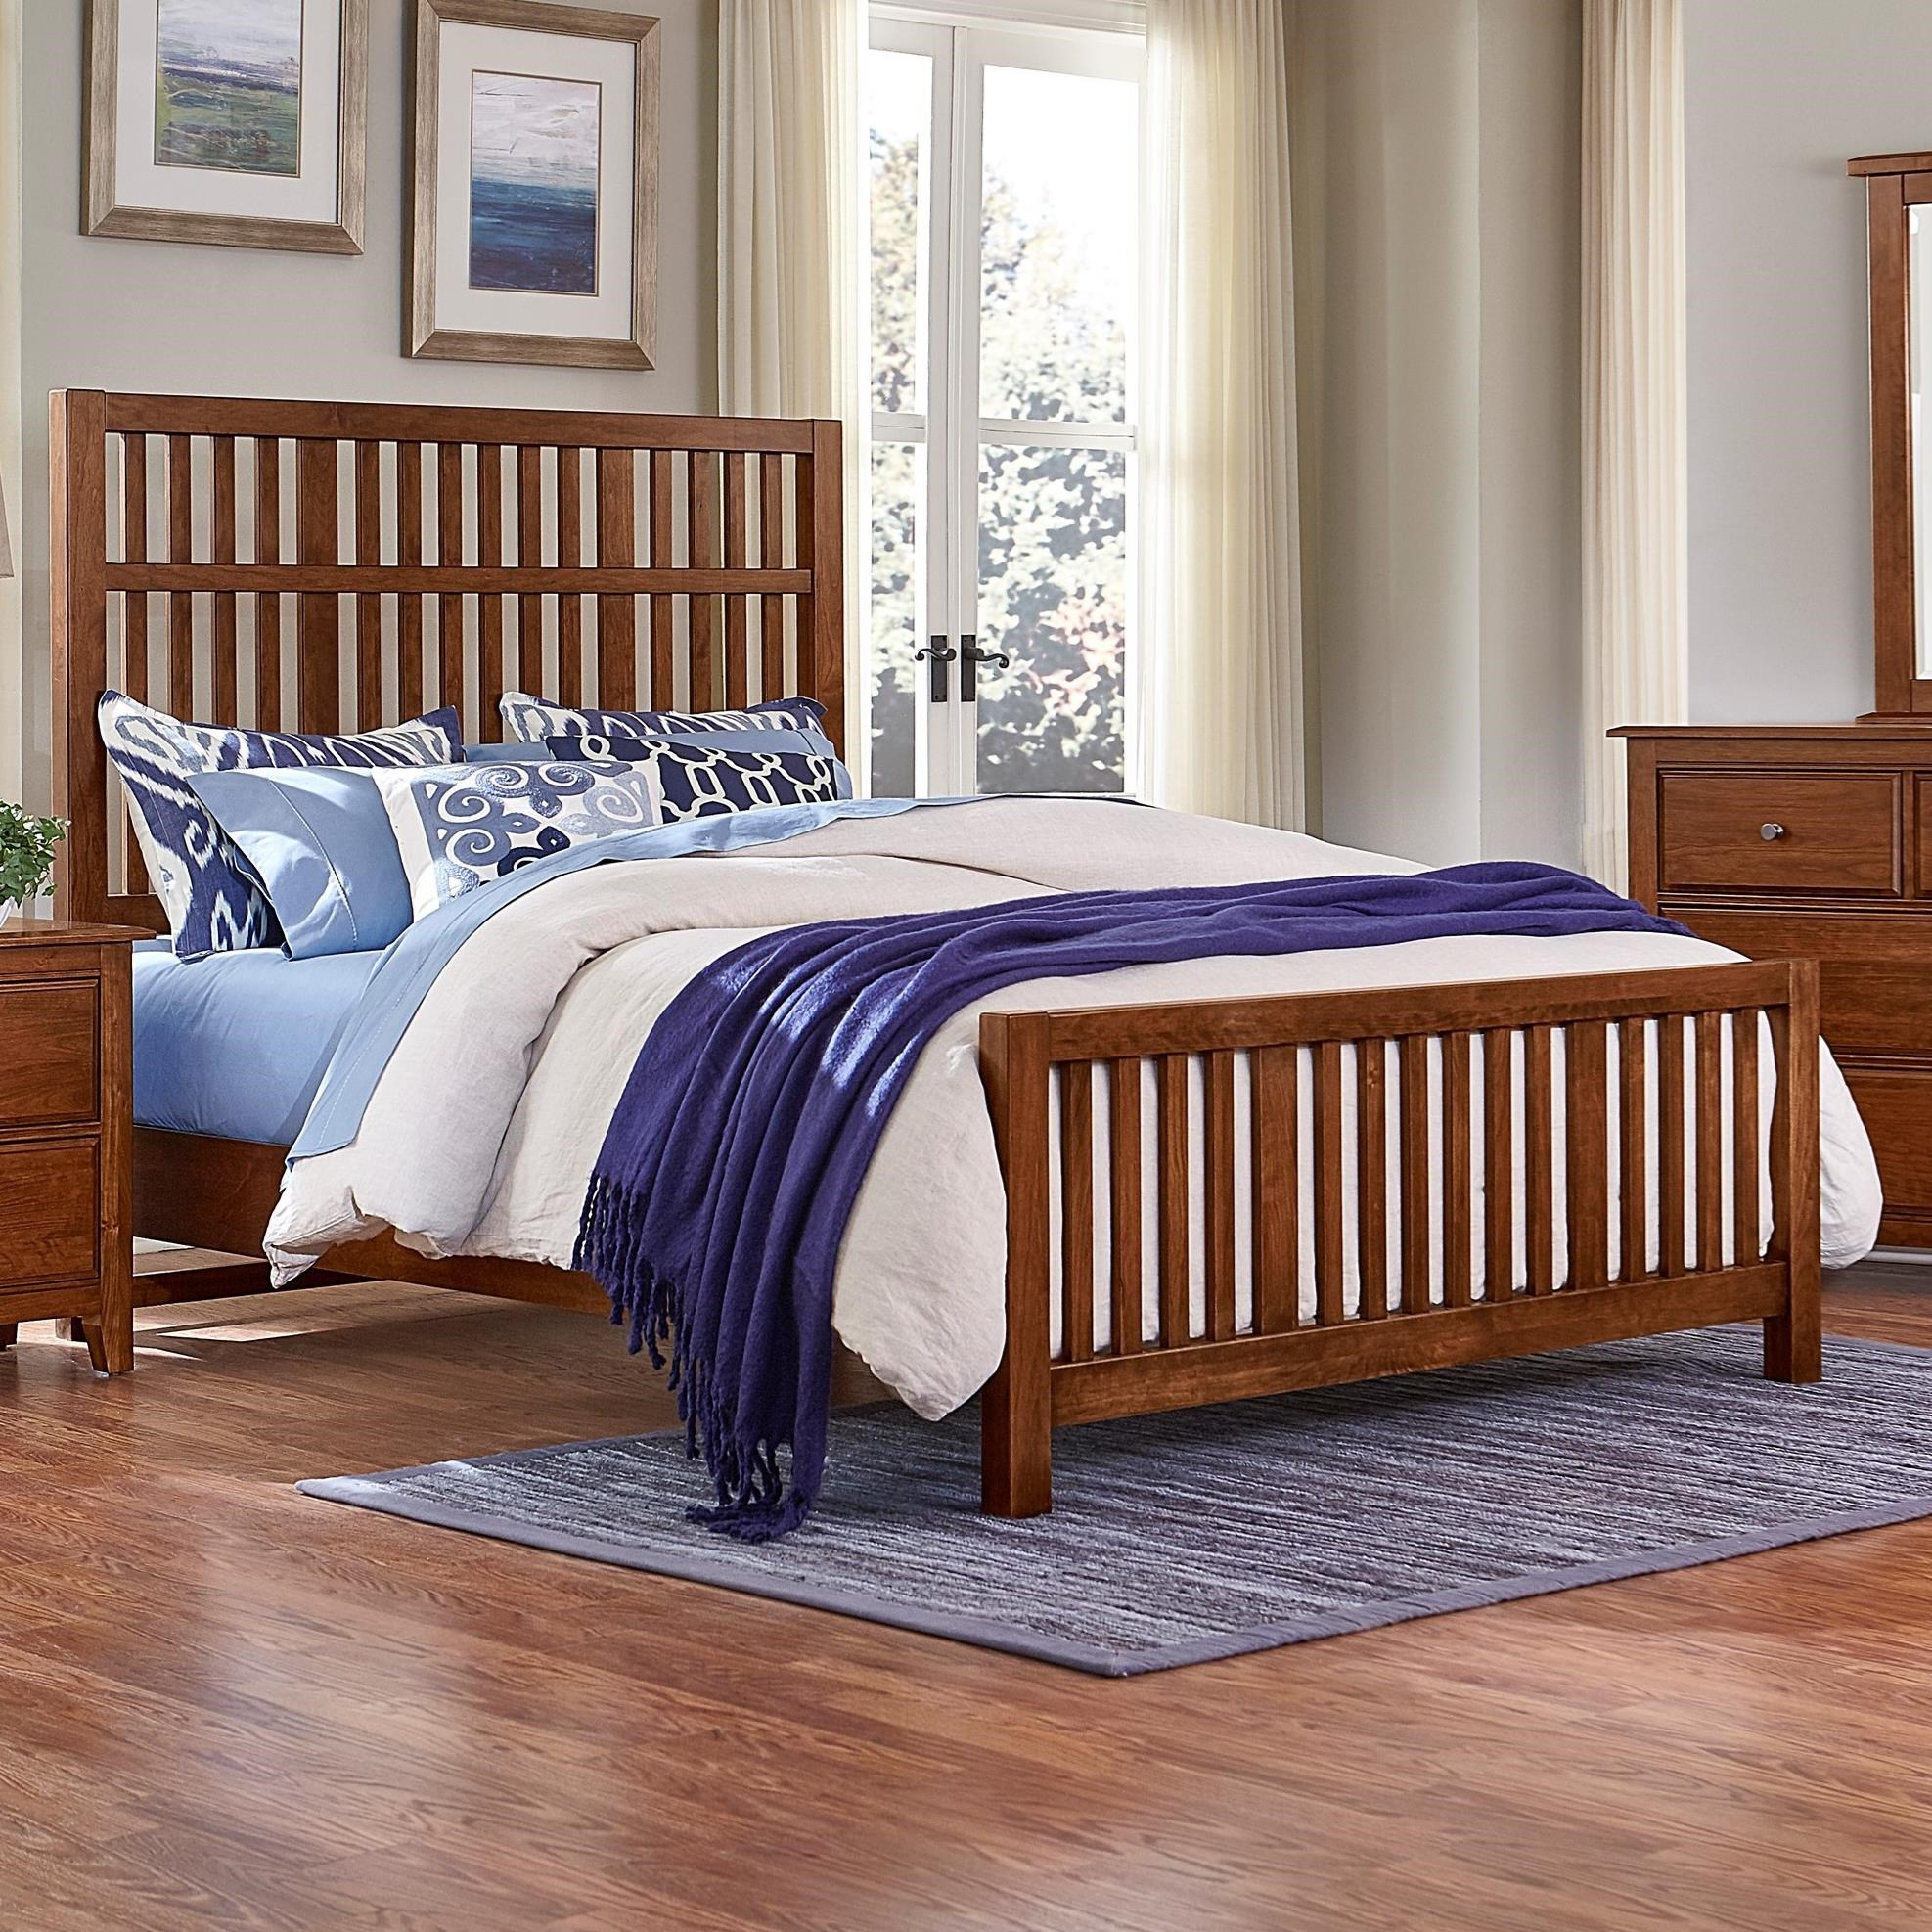 Artisan Choices King Craftsman Slat Bed by Artisan & Post at Rooms and Rest